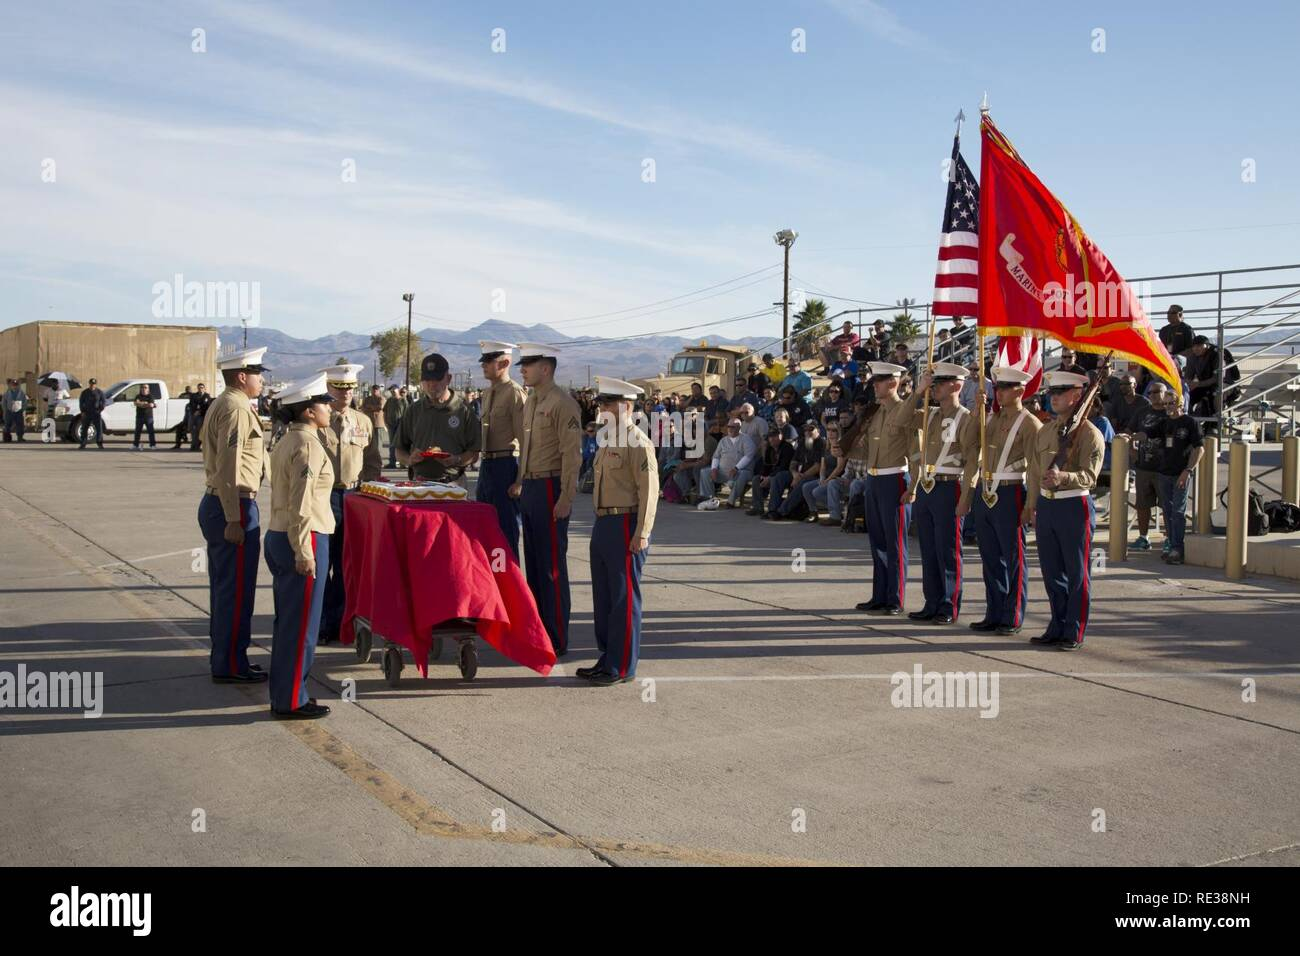 (Left) Sergeant Moises Machuca; Cpl. Kristina Zamora, Lt. Col. Timothy Silkowski, director, Fleet Support Division, stand ready as 63-year-old retired Gunnery Sgt. Leland Snouffer, security, Production Plant Barstow, representing the oldest Marine at PPB, accepts the piece of ceremonial birthday cake and prepares to pass it on to the youngest Marine present, 20 year old Pfc. Jacob Sotto, FSD, as coporals John Teale and Victor Manriquez stand at attention during the celebration of the 241st birthday of the founding of the Marine Corps, Nov. 7. - Stock Image